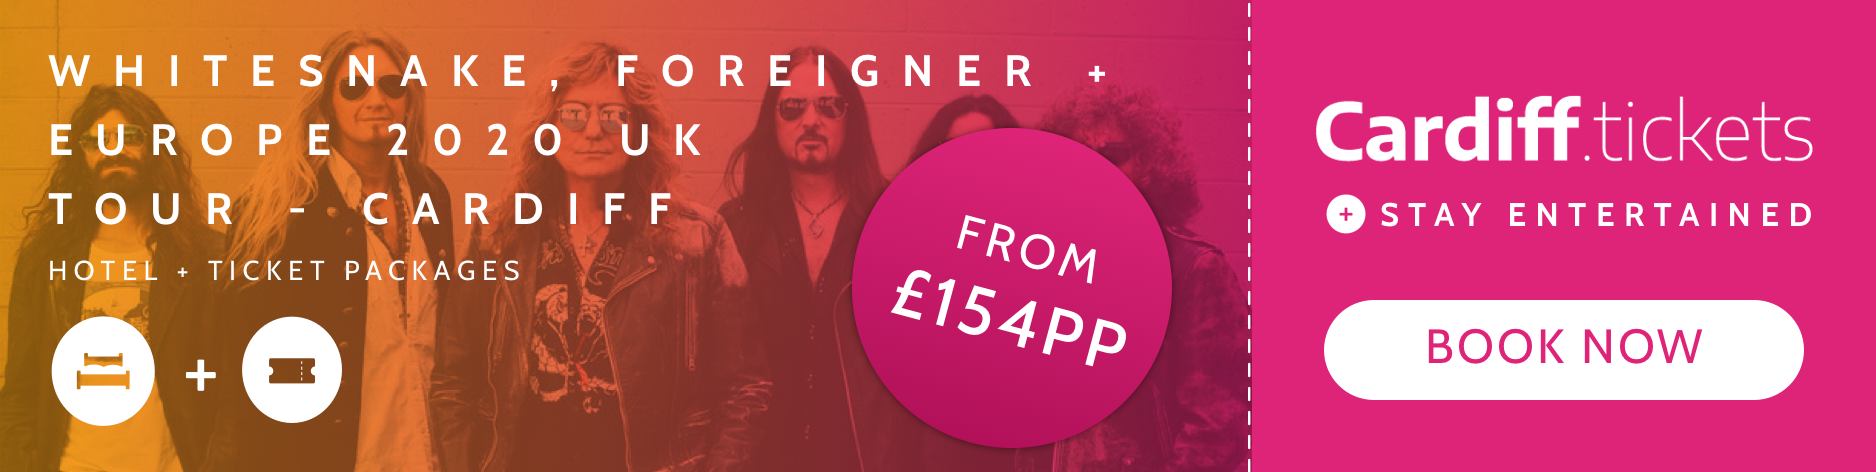 WHITESNAKE, FOREIGNER & EUROPE 2020 UK TOUR- CARDIFF tickets and hotel package